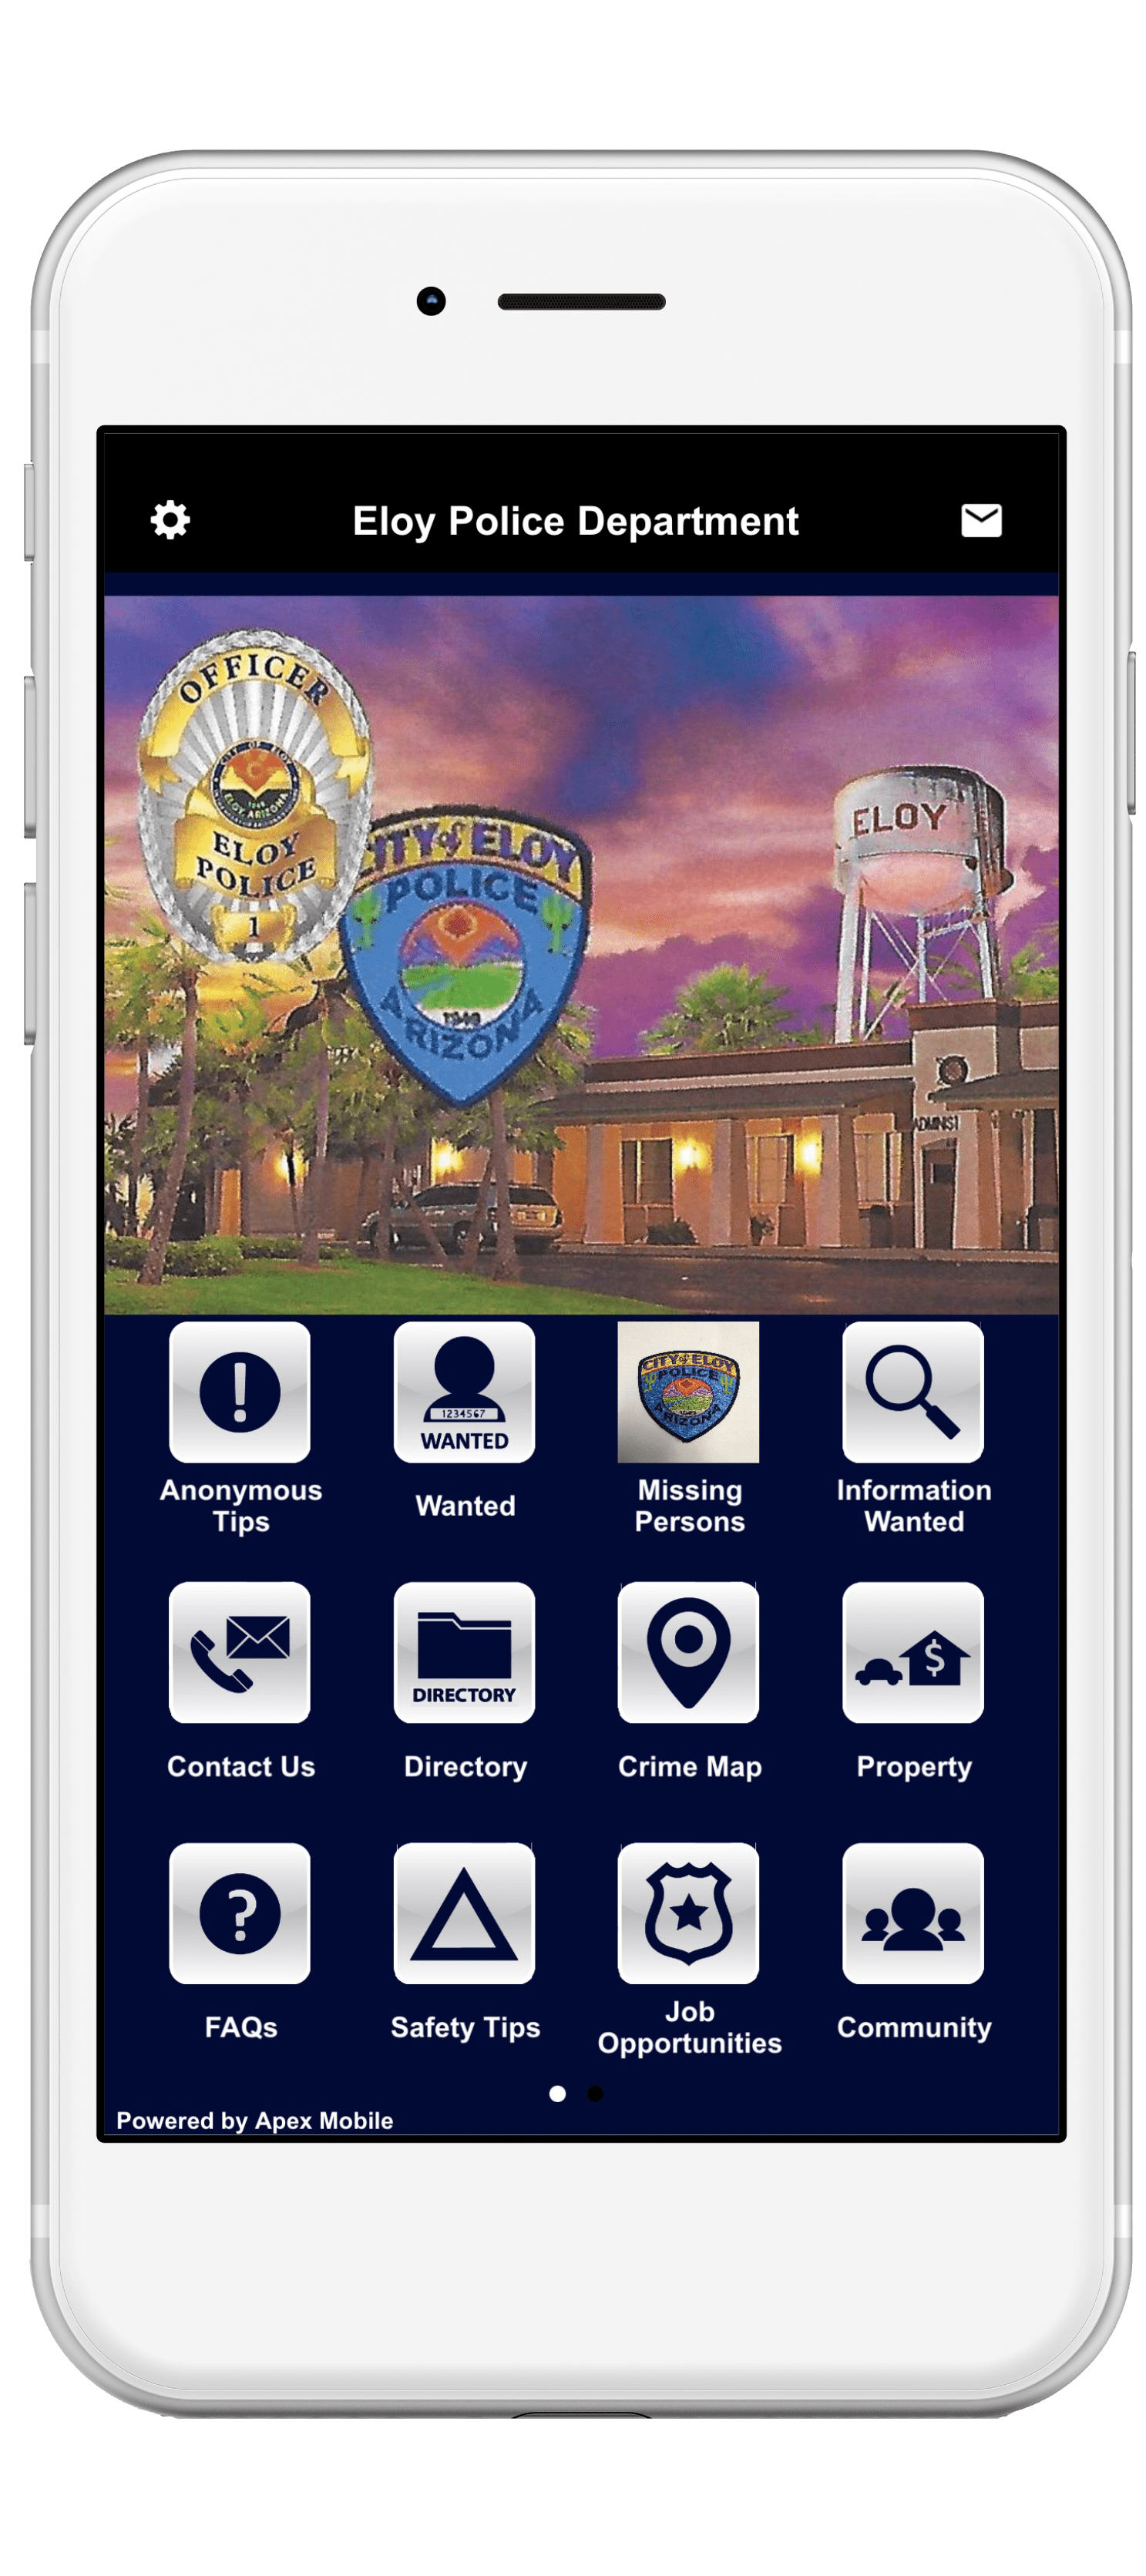 eloy police department mobile app screenshot-min